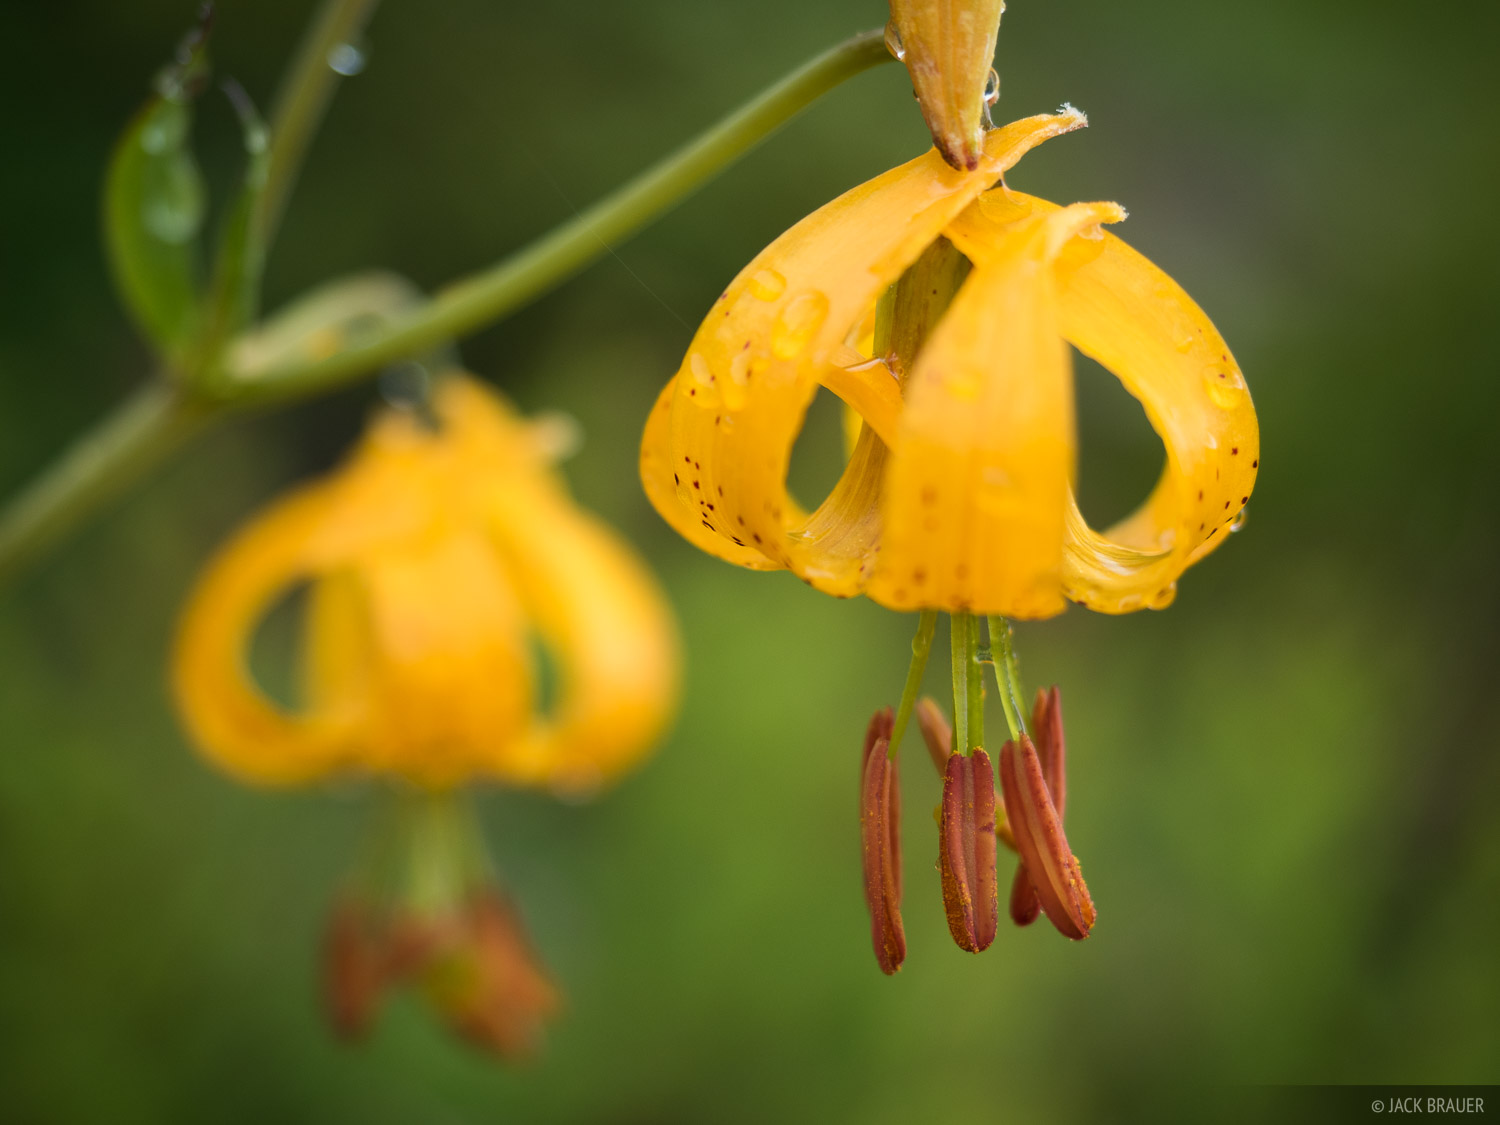 Olympic Peninsula, Sol Duc, Washington, wildflowers, Olympic National Park, Tiger Lily, photo